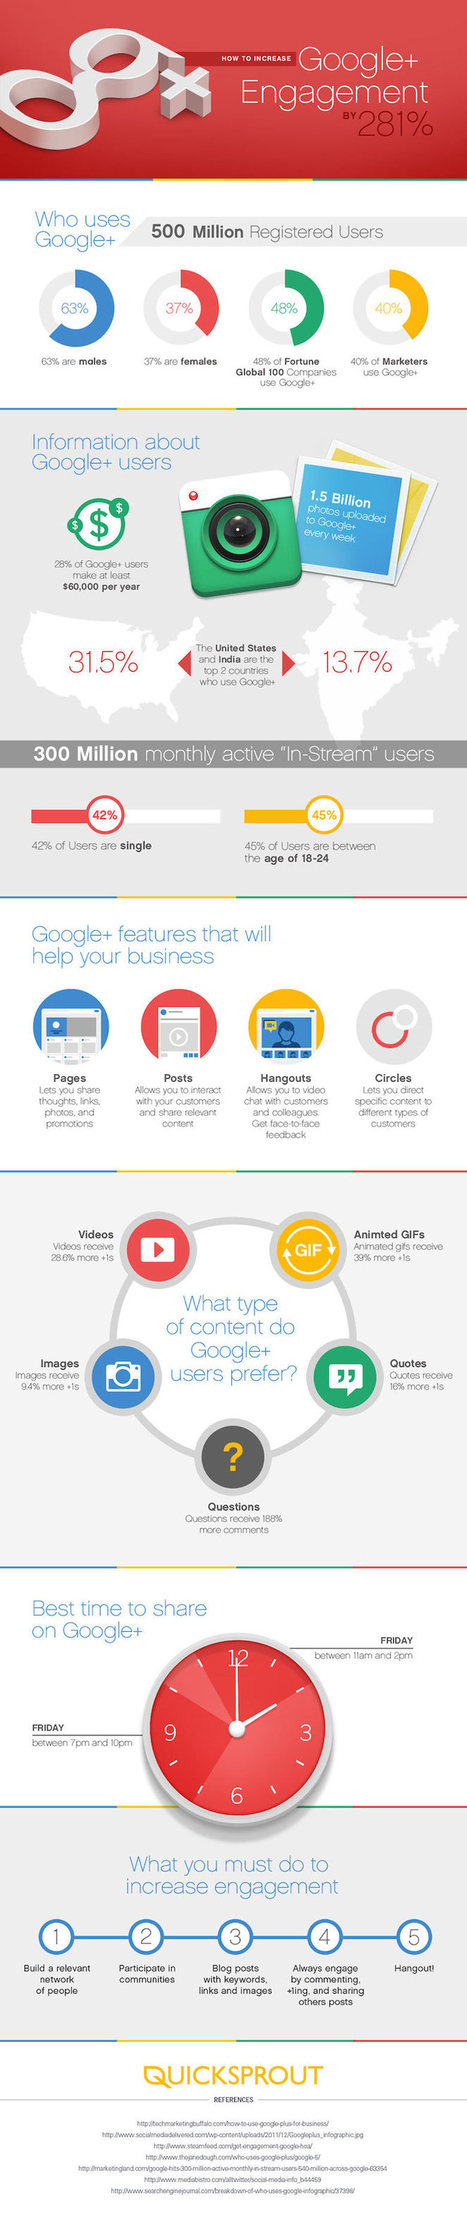 How to Increase Your Google Plus Engagement by 300% an infographic | Top Internet Marketing Infographics - in my opinion | Scoop.it